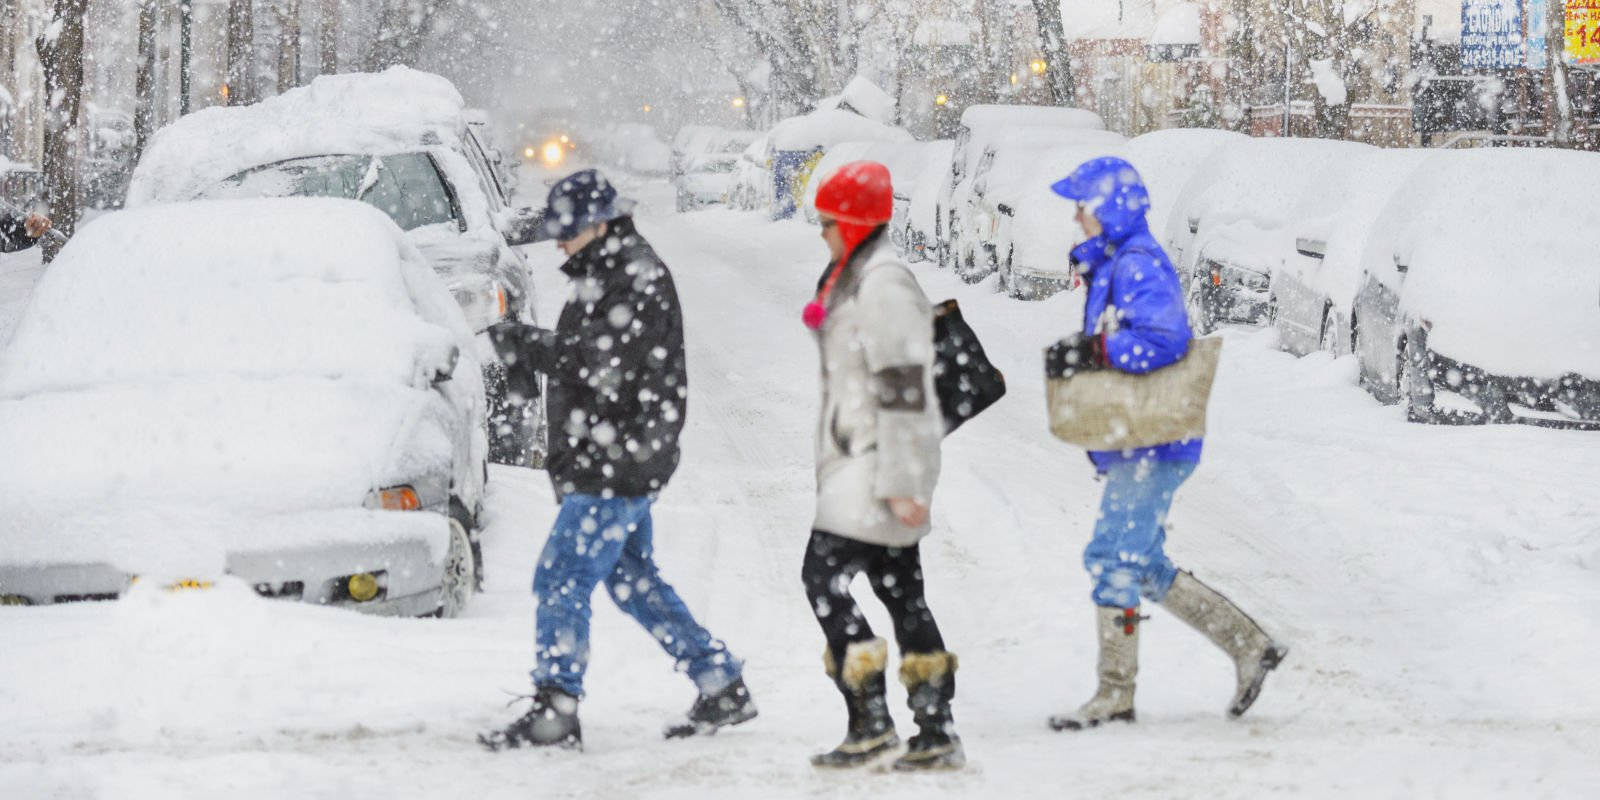 us witness brutal winter 3 - US To Witness Brutal Winter This Year